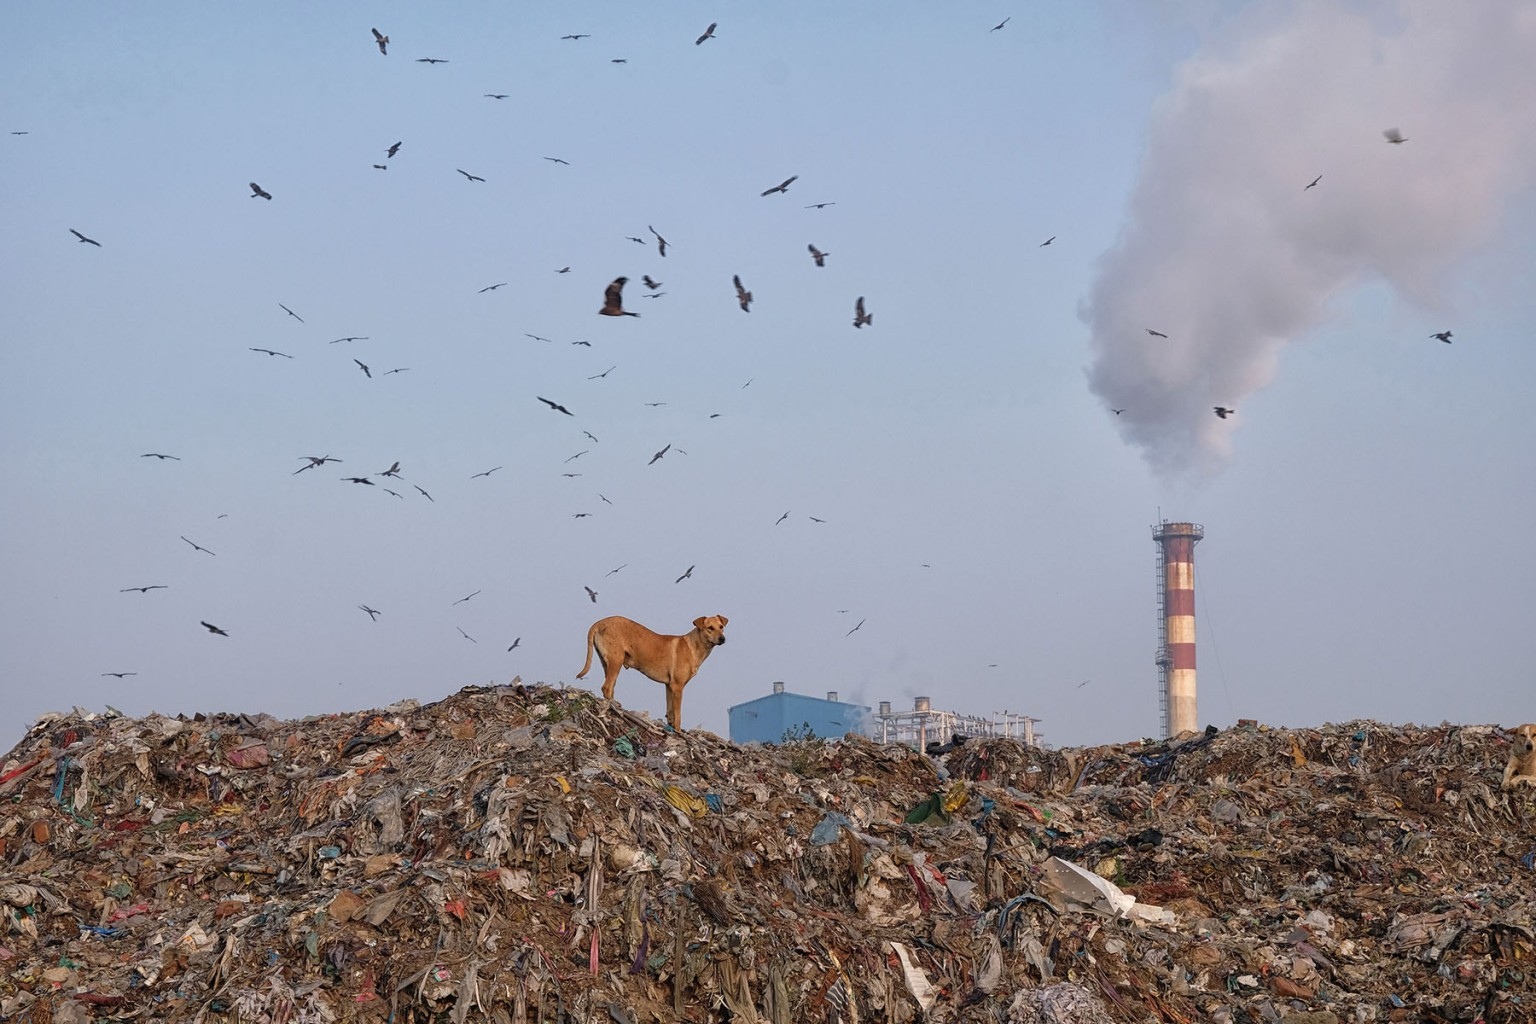 A dog stands at the top of a mountain of garbage as birds fly overhead at the Ghazipur landfill site in New Delhi on March 5. NOEMI CASSANELLI/AFP/Getty Images